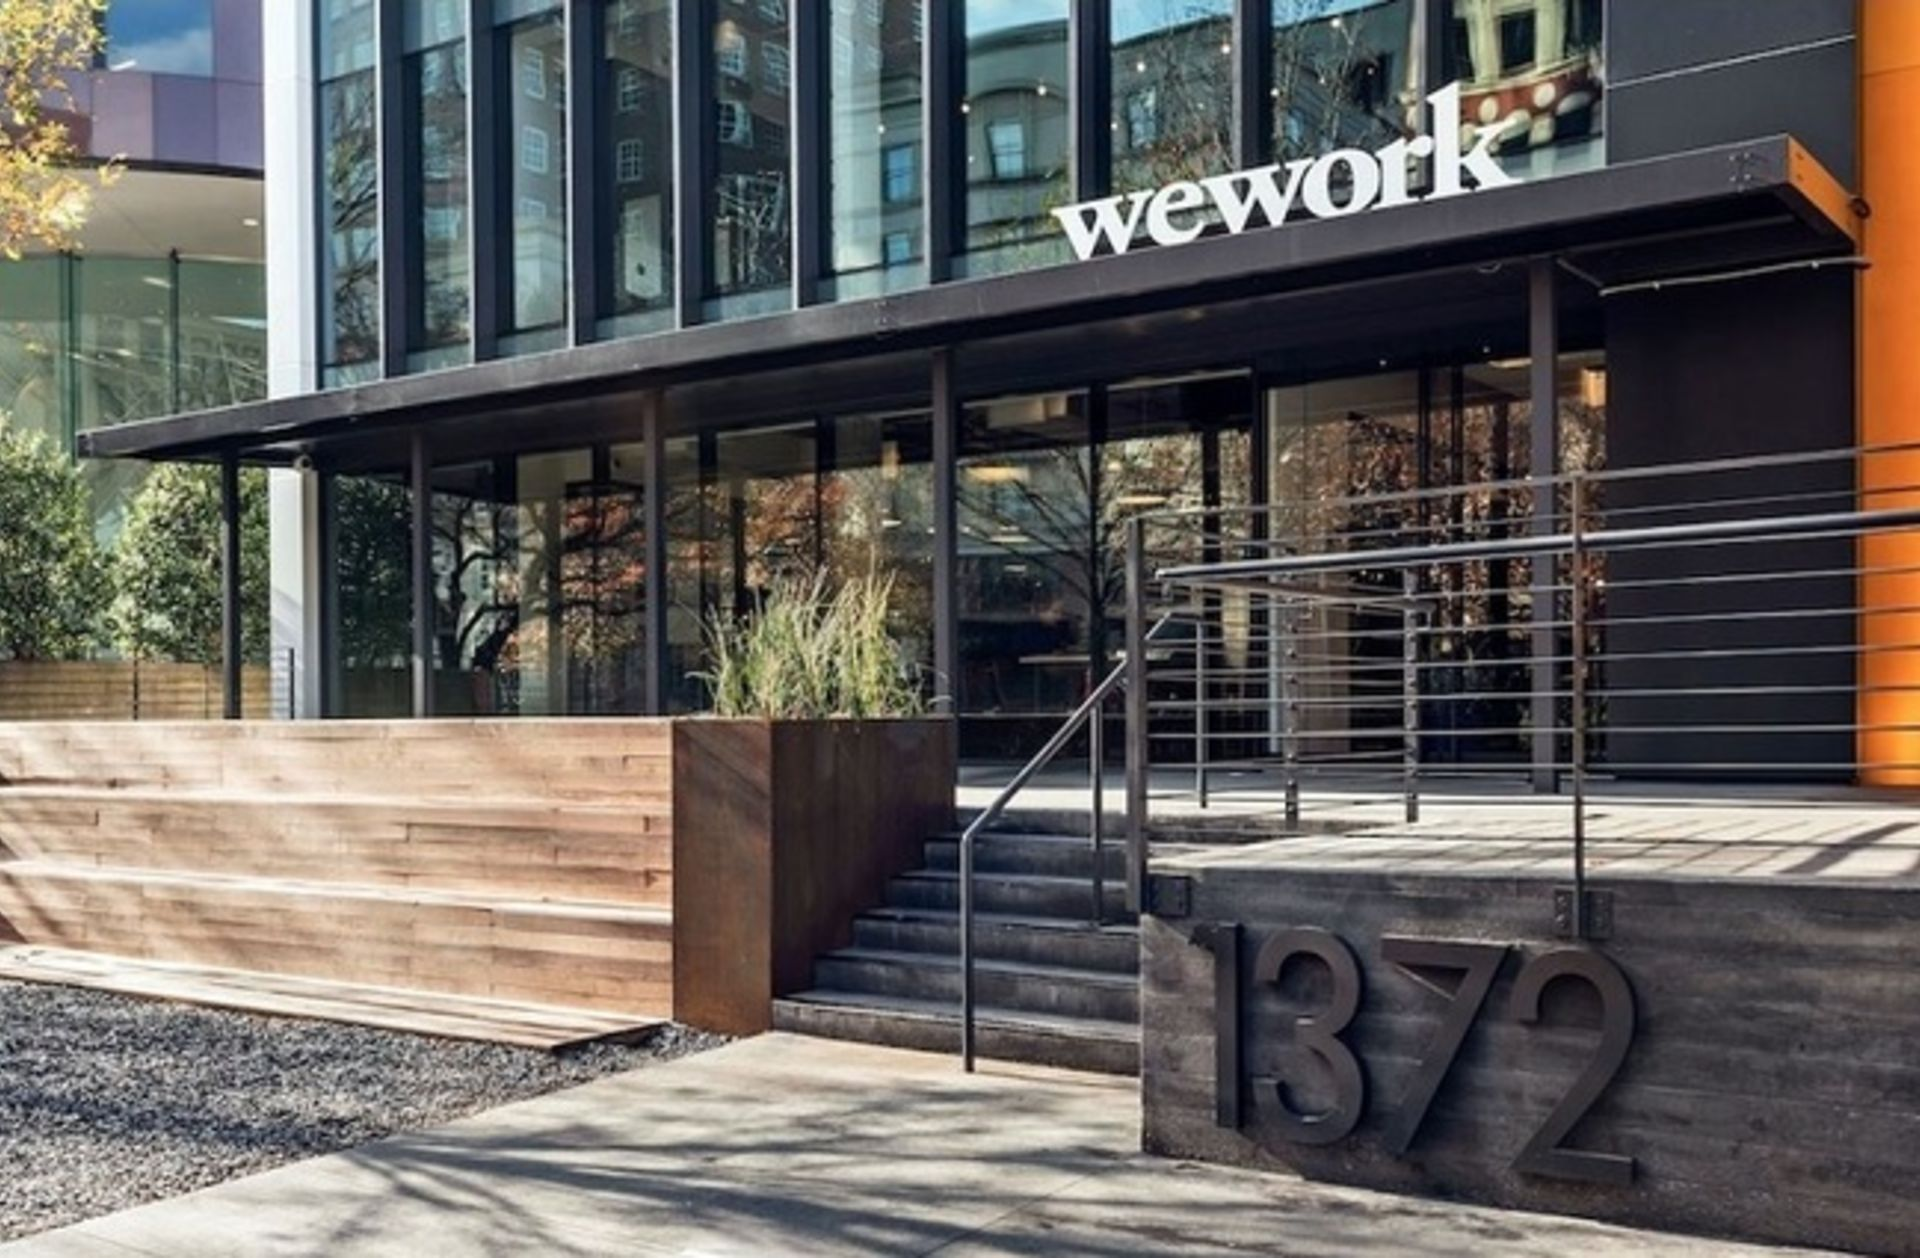 Will WeWork Work?